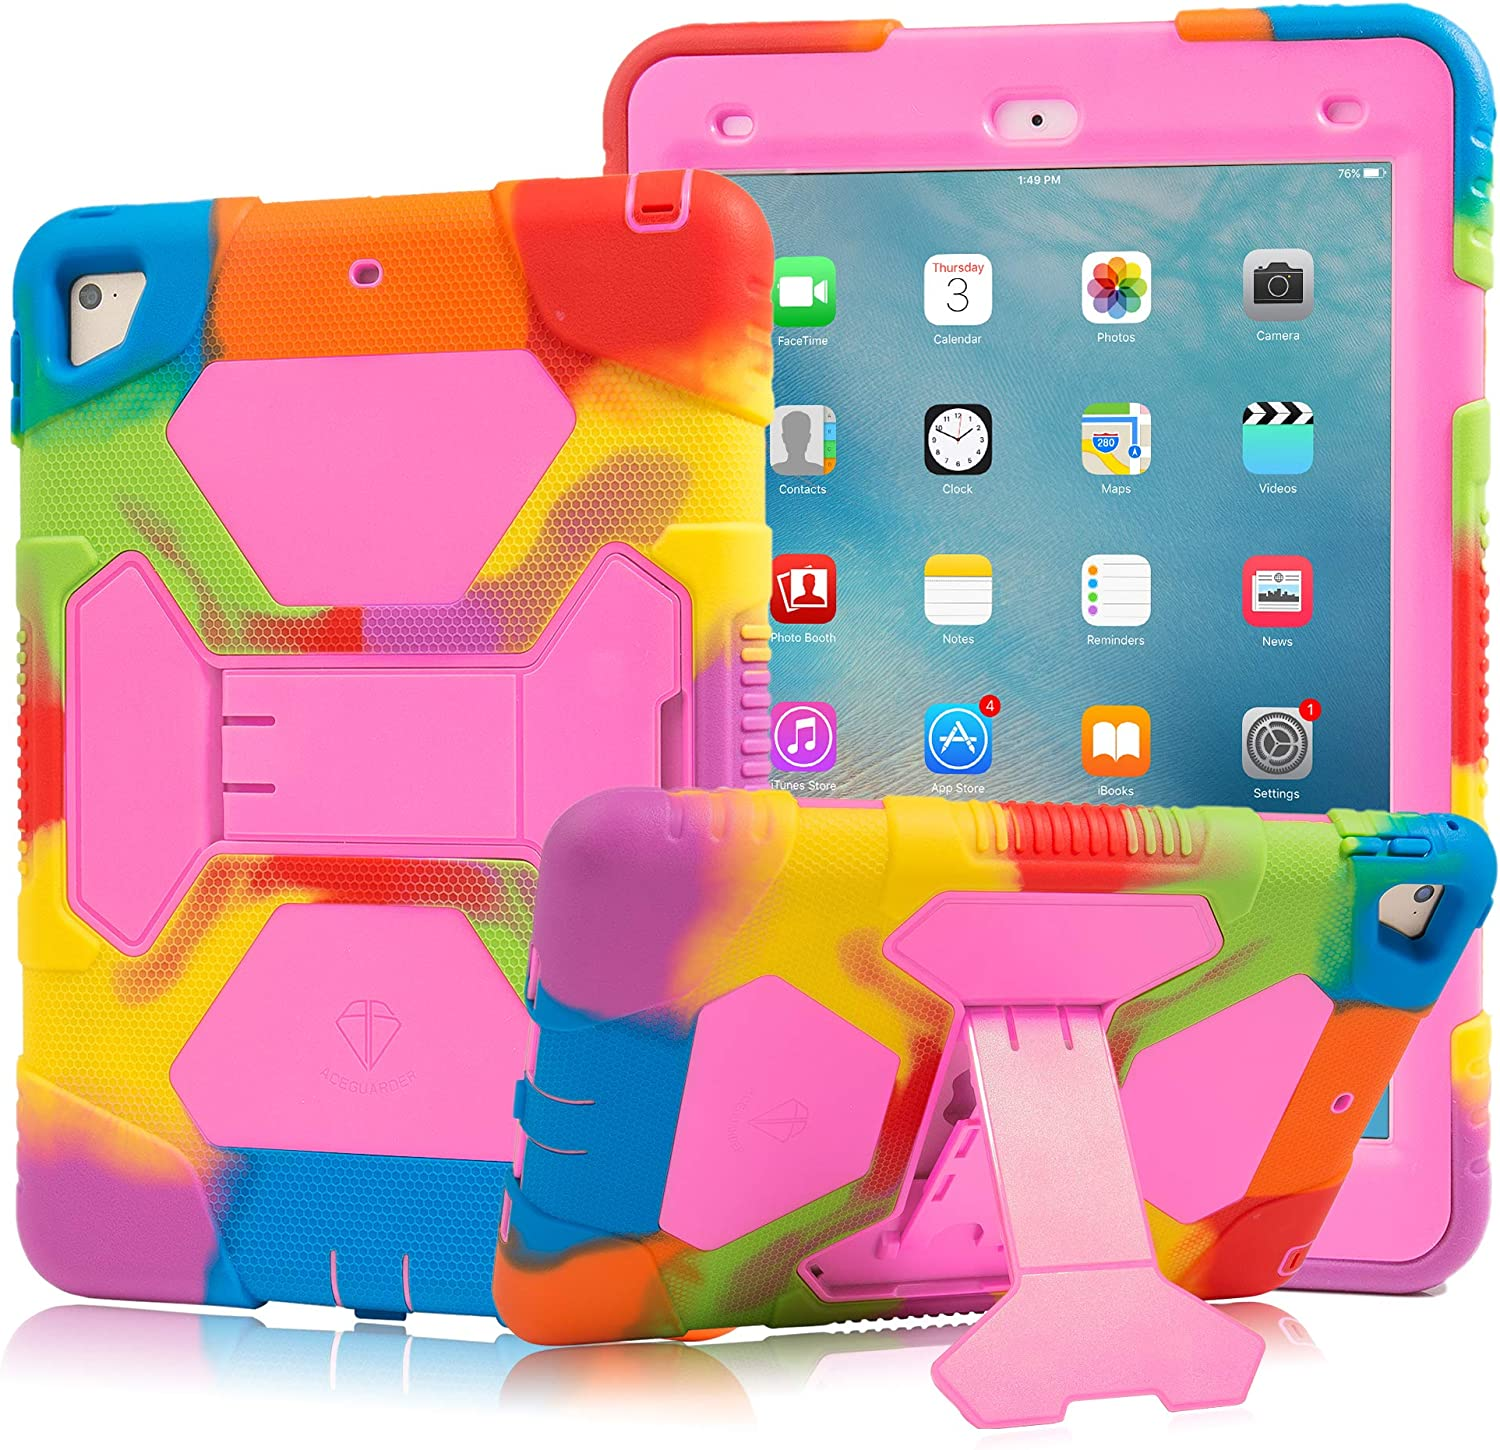 New iPad 9.7 2018/2017 Case, KIDSPR Lightweight Shockproof Rugged Cover with Stand Protective Full Body Rugged for Kids for New iPad 9.7 inch 2018/2017 (6th Gen, 5th Gen) (Rainbow/Pink)